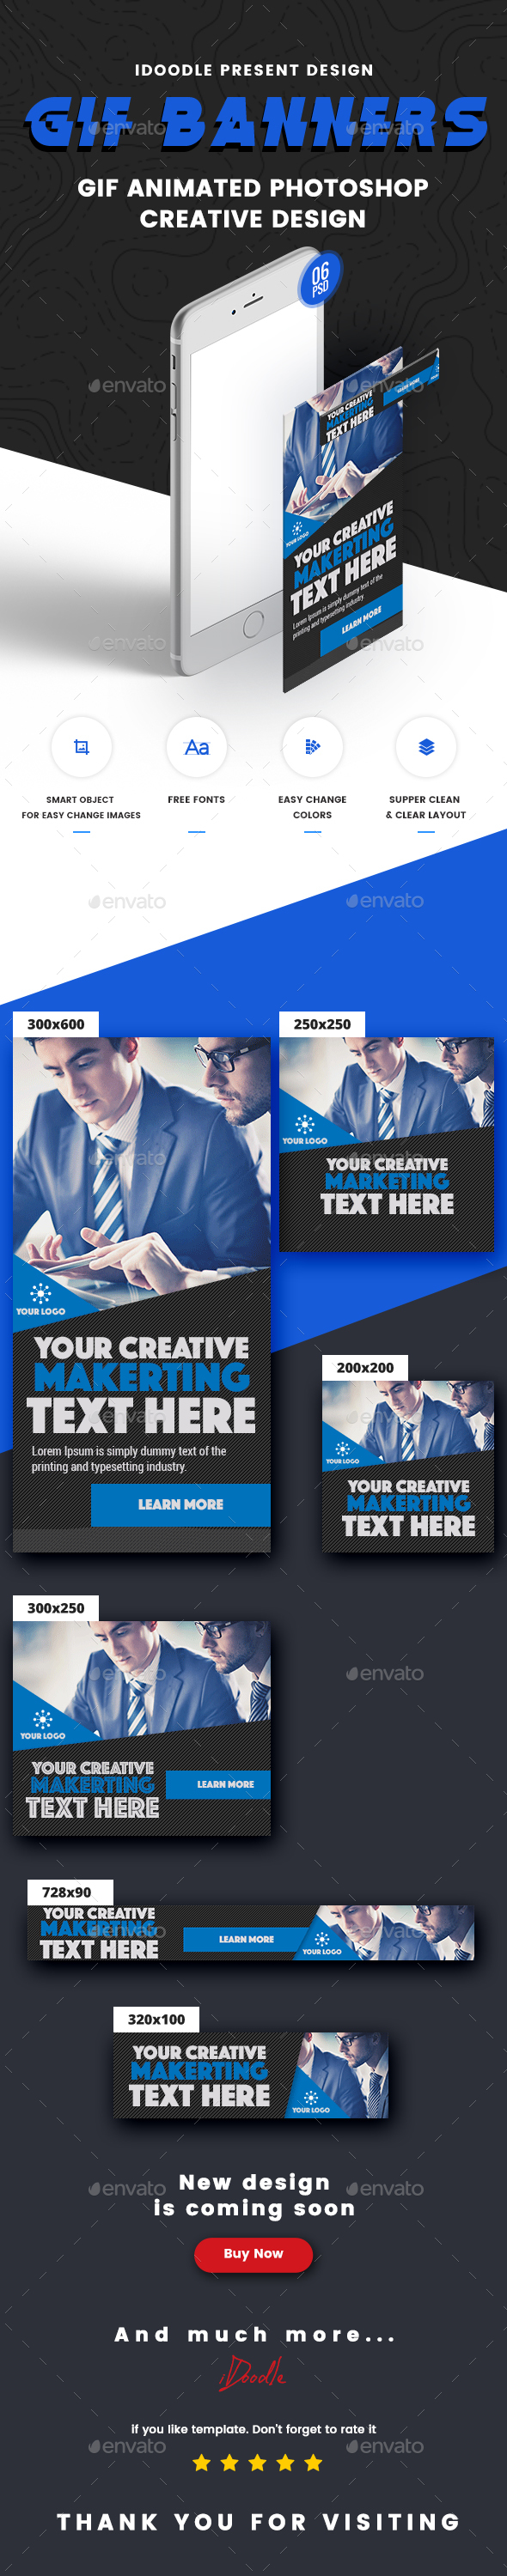 Animated GIF Business Banner Ad - Banners & Ads Web Elements